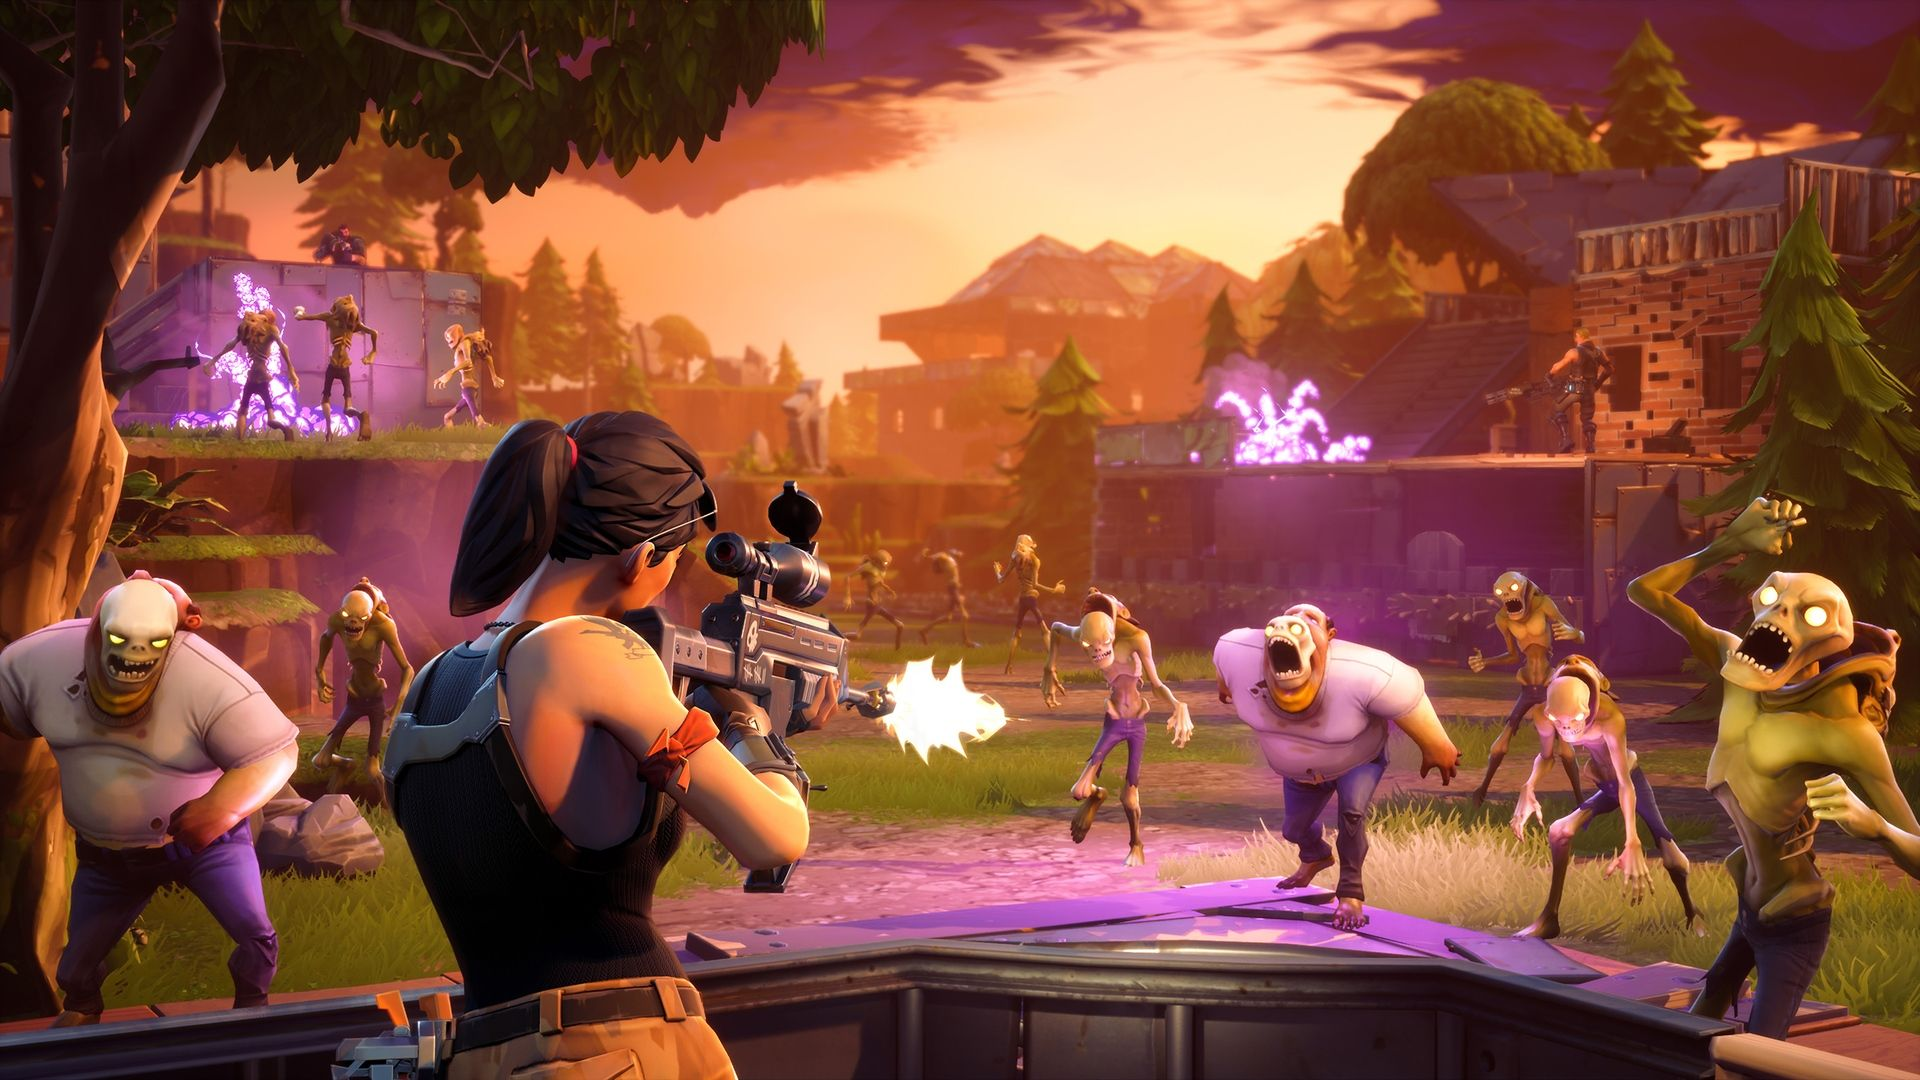 Ps4 Fortnite Wallpapers Top Free Ps4 Fortnite Backgrounds Wallpaperaccess